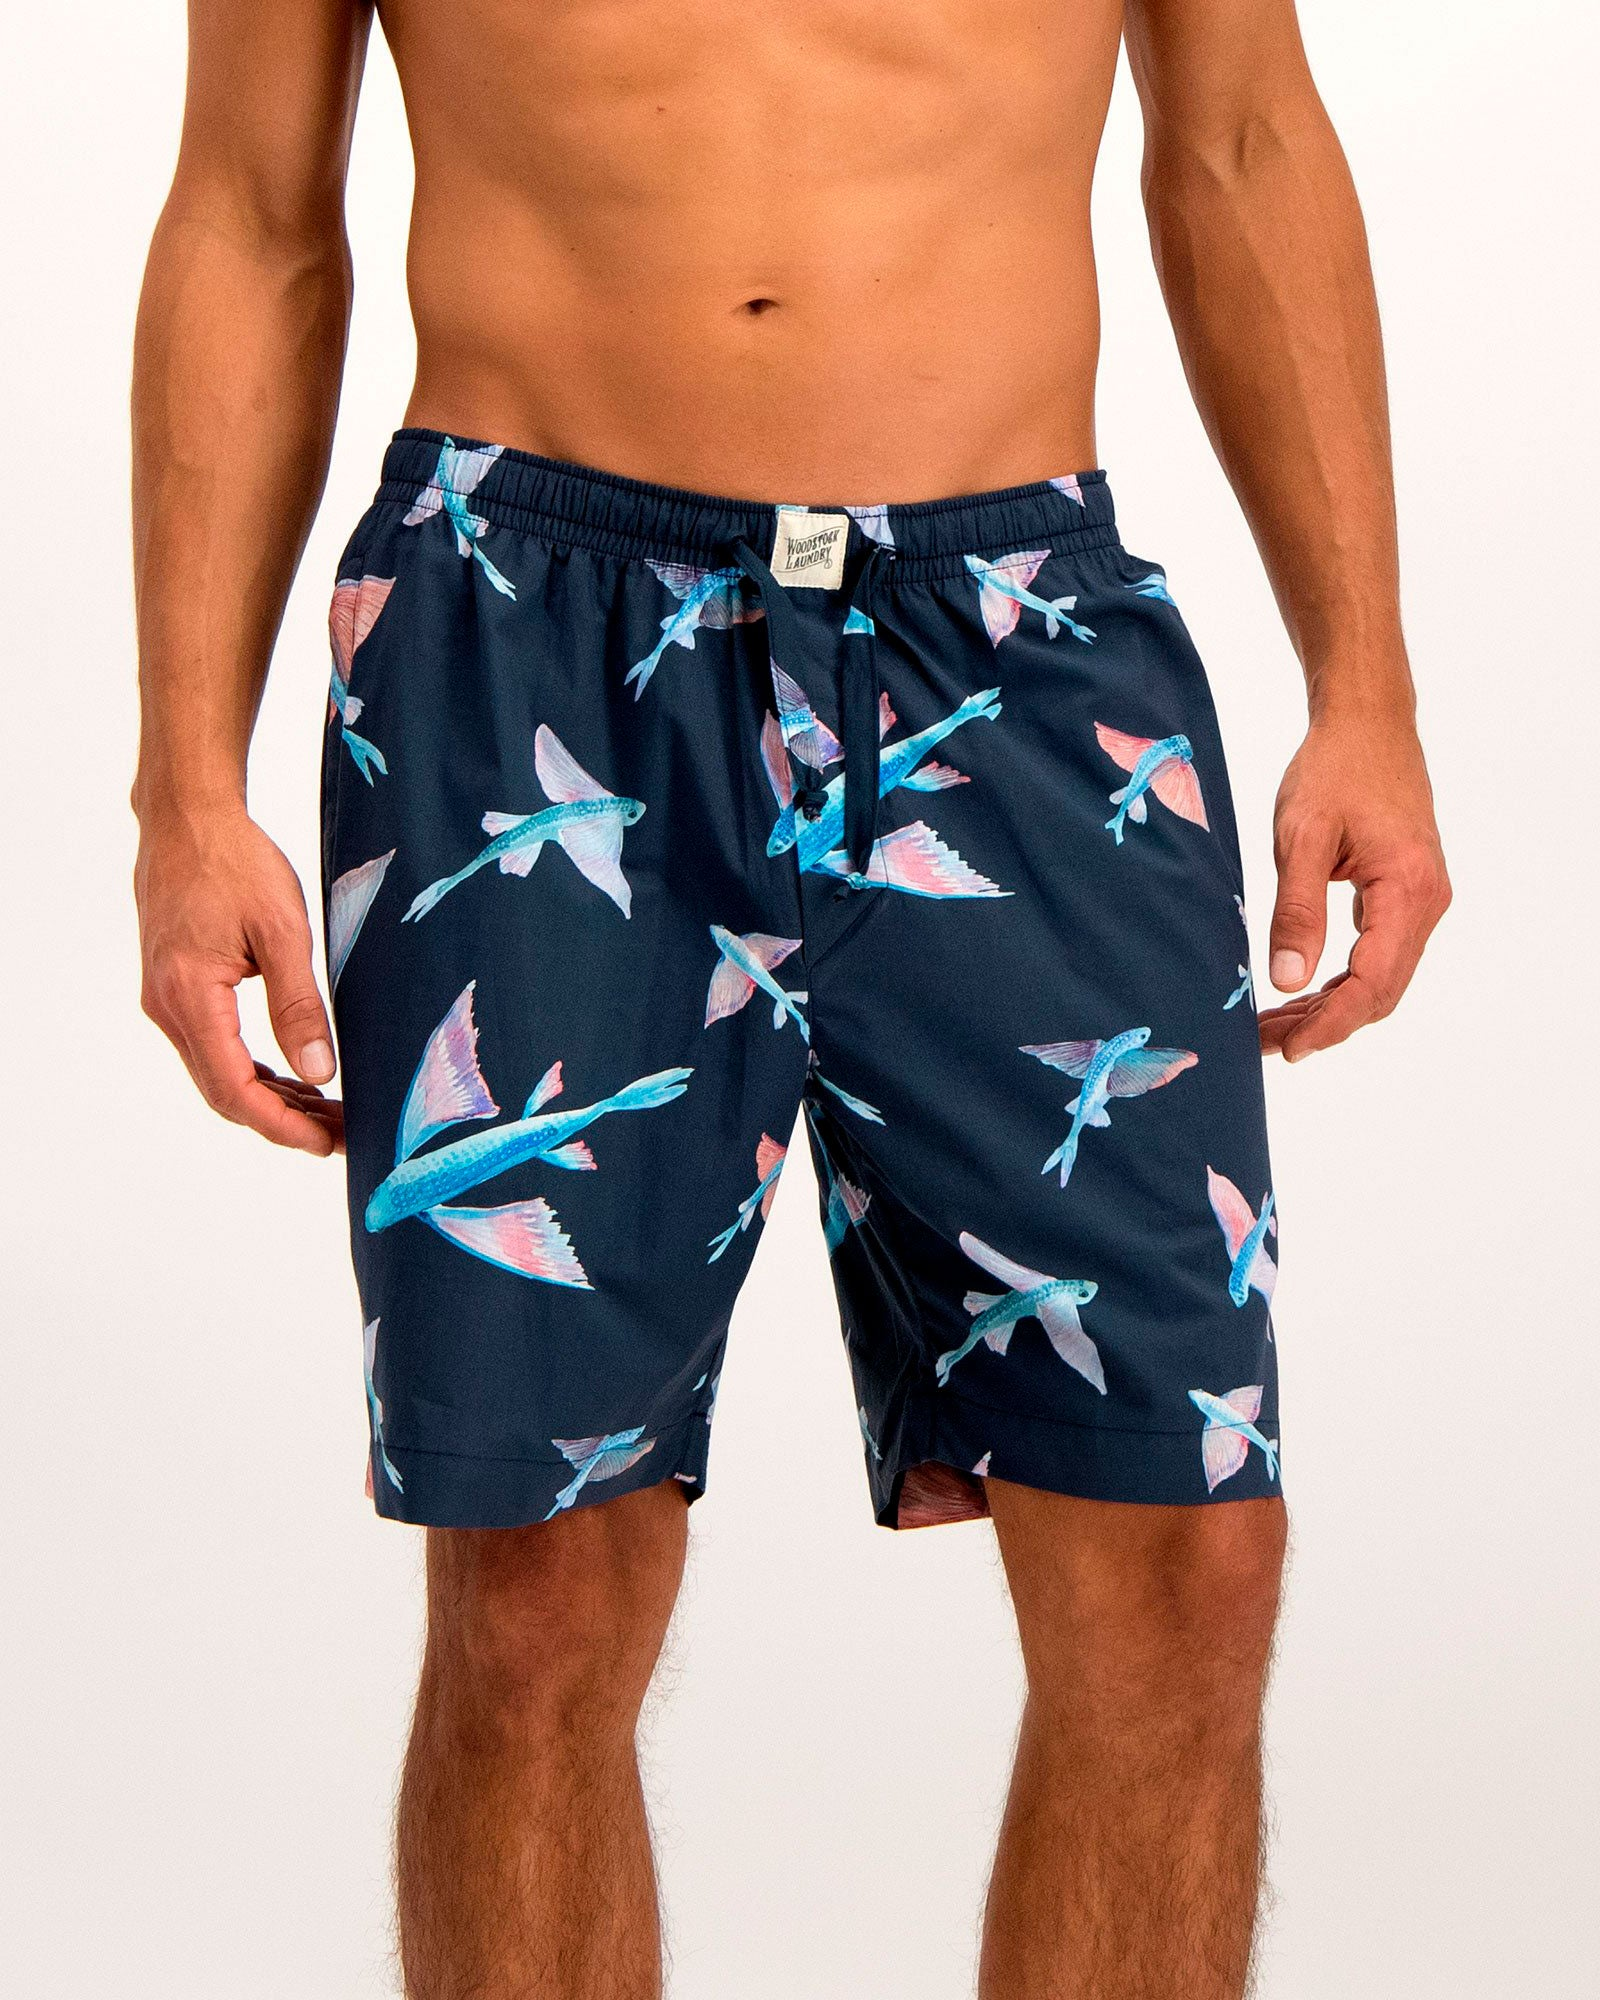 Mens Lounge Shorts Flying Fish Navy - Woodstock Laundry